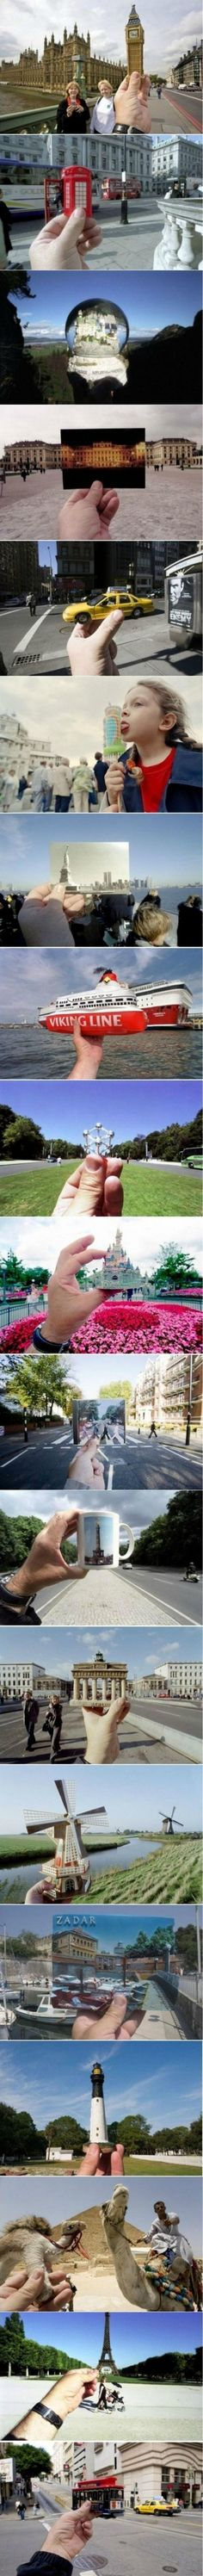 Souvenirs and forced perspective photography